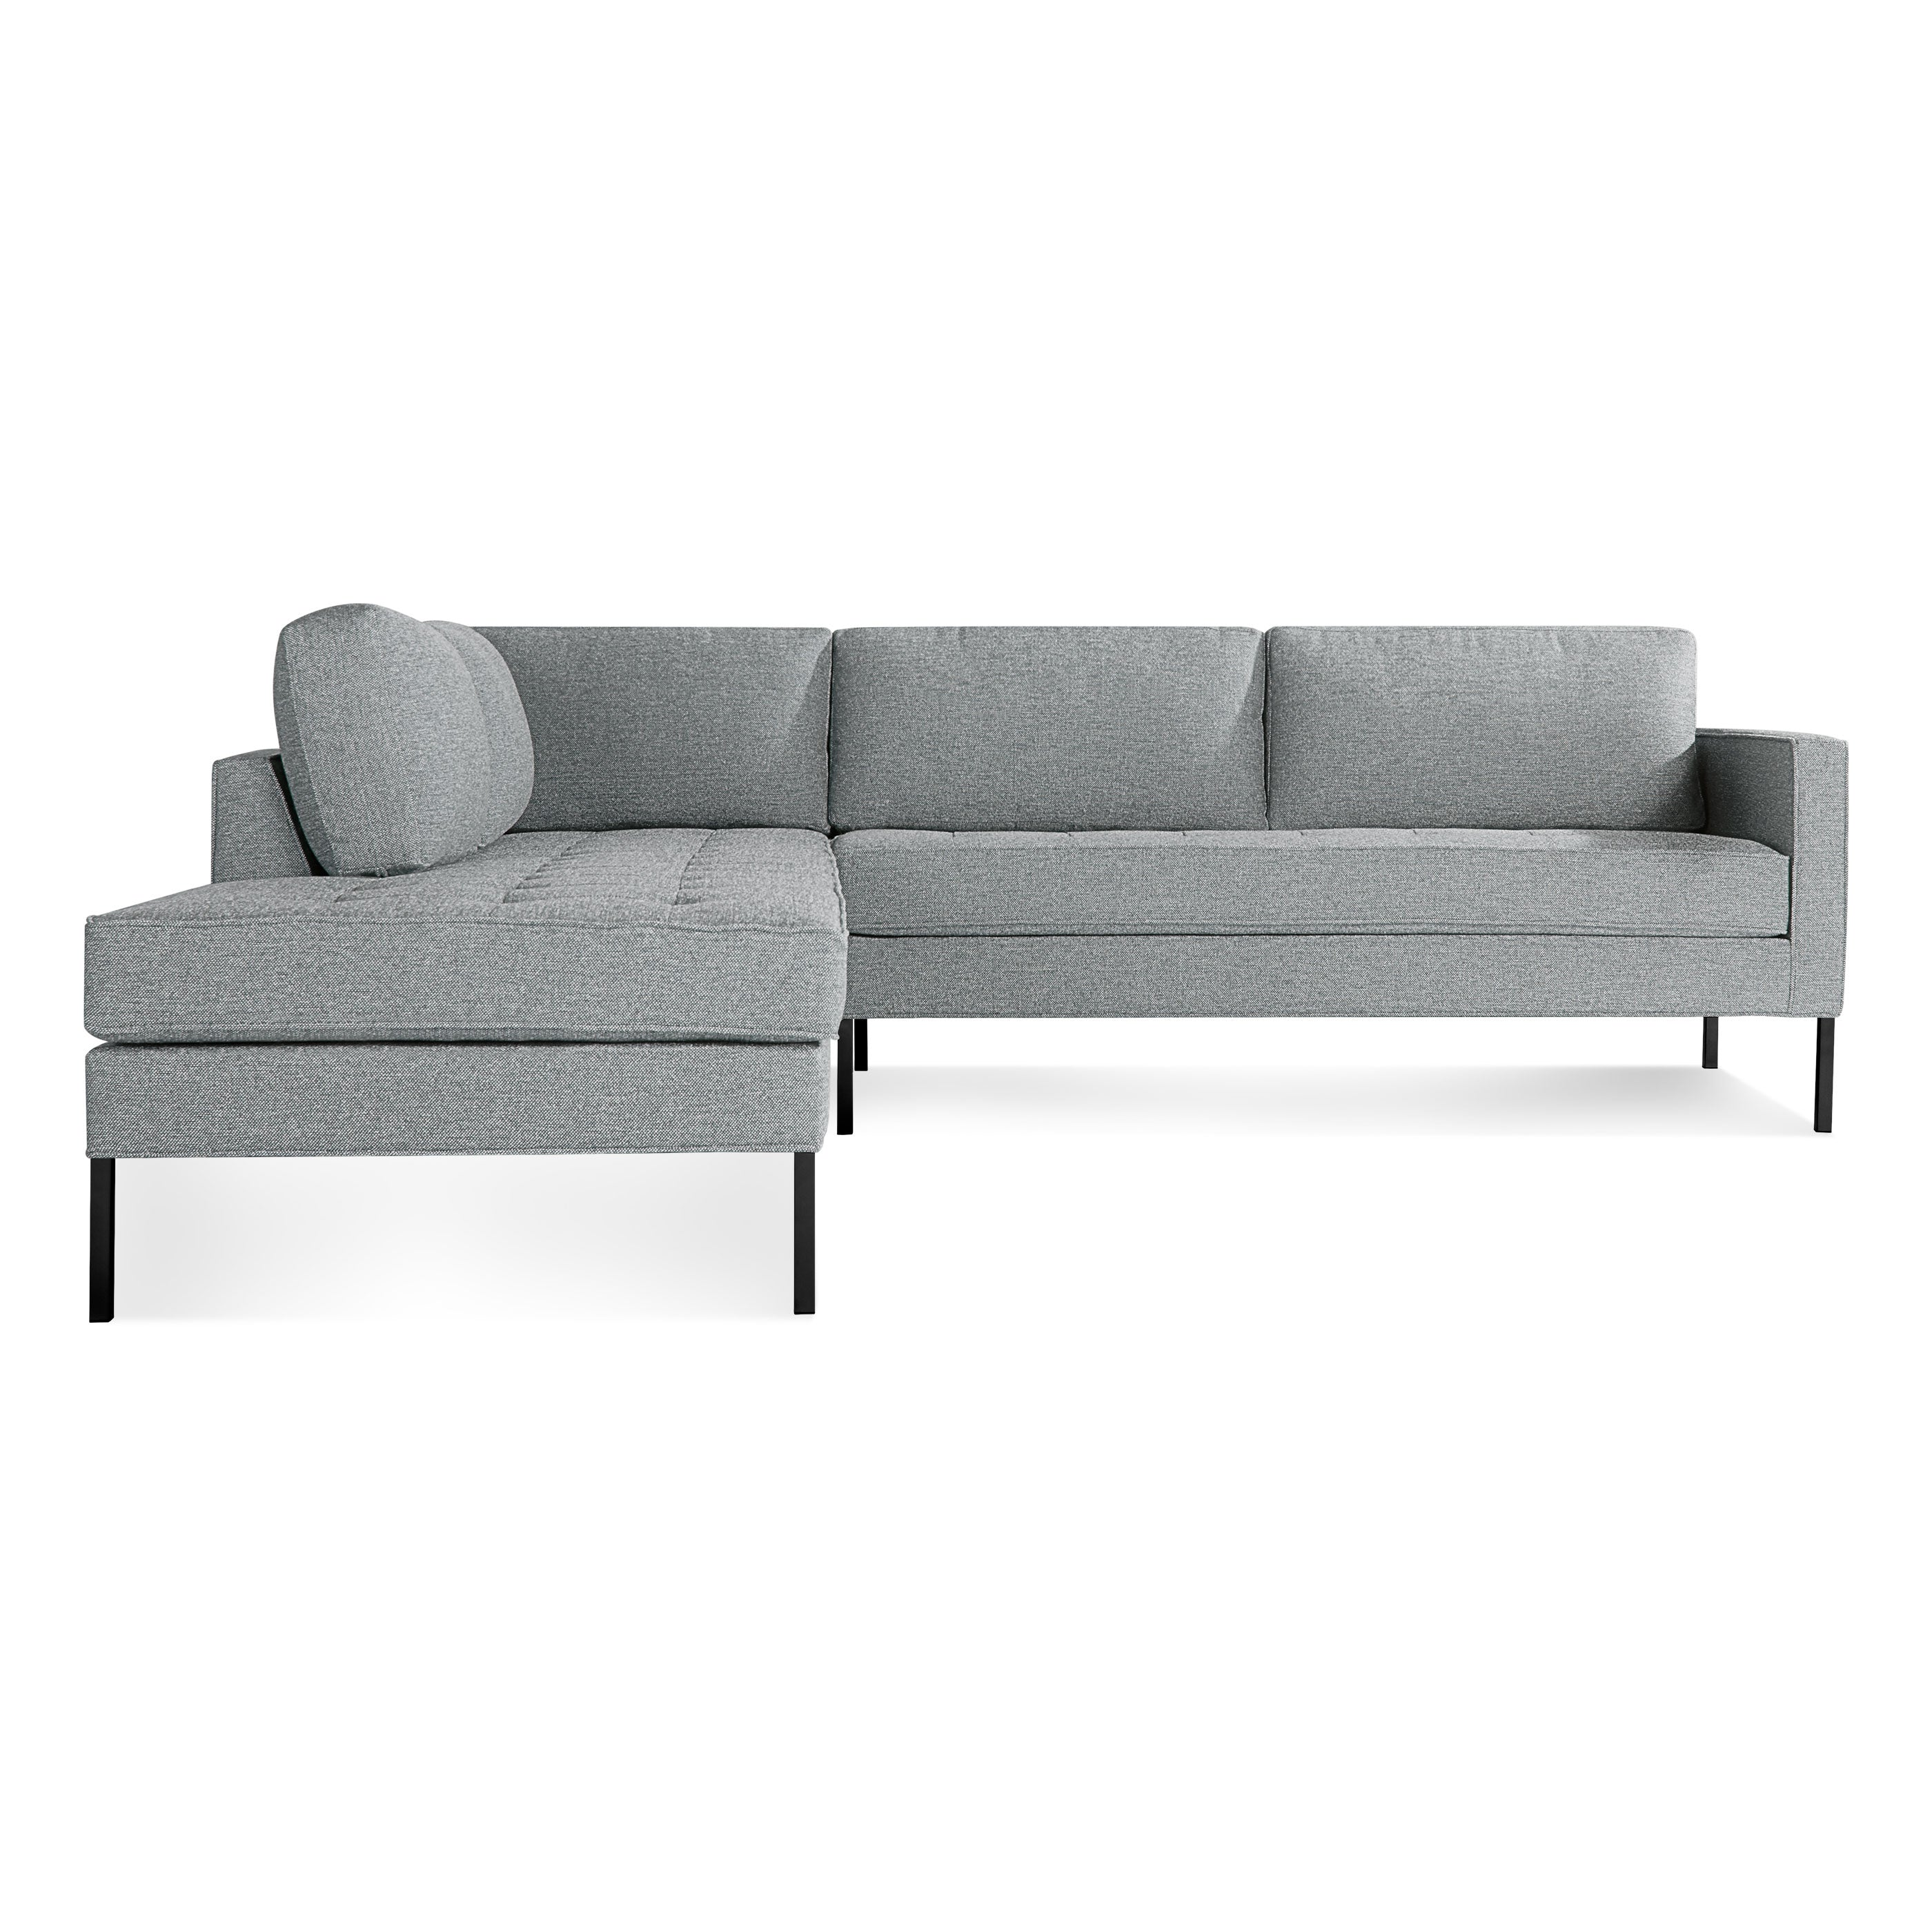 Paramount Sectional - Design Distillery